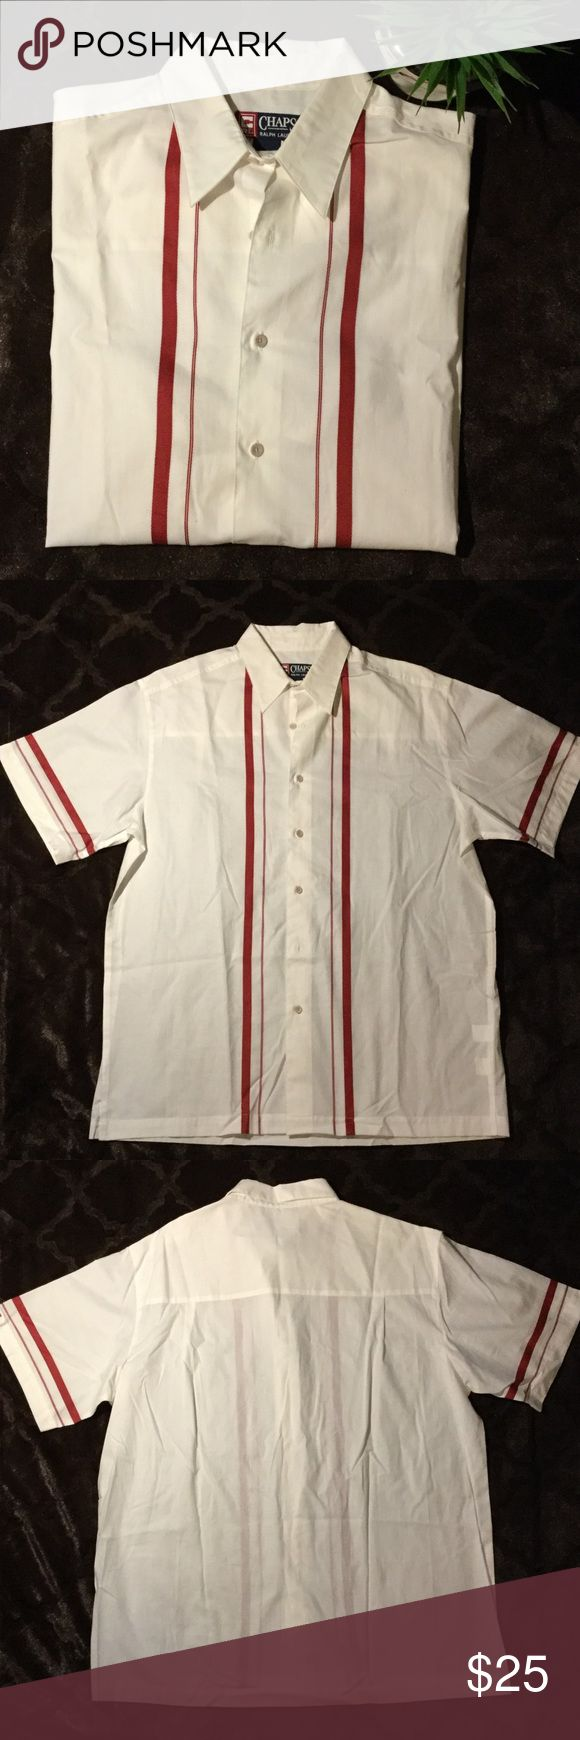 "NWOT Chaps RL Cubavera ""Charlie Sheen"" Shirt, L Calling all ""2 1/2 Men/Charlie Sheen"" Fans! New without tags. Chaps Ralph Lauren Cubavera casual button down bowling shirt. Short sleeve. Large. 25' pit to pit. 100% cotton. Linen-like material. White with deep red/burgundy stripes. Side slits. Ralph Lauren Shirts Casual Button Down Shirts"